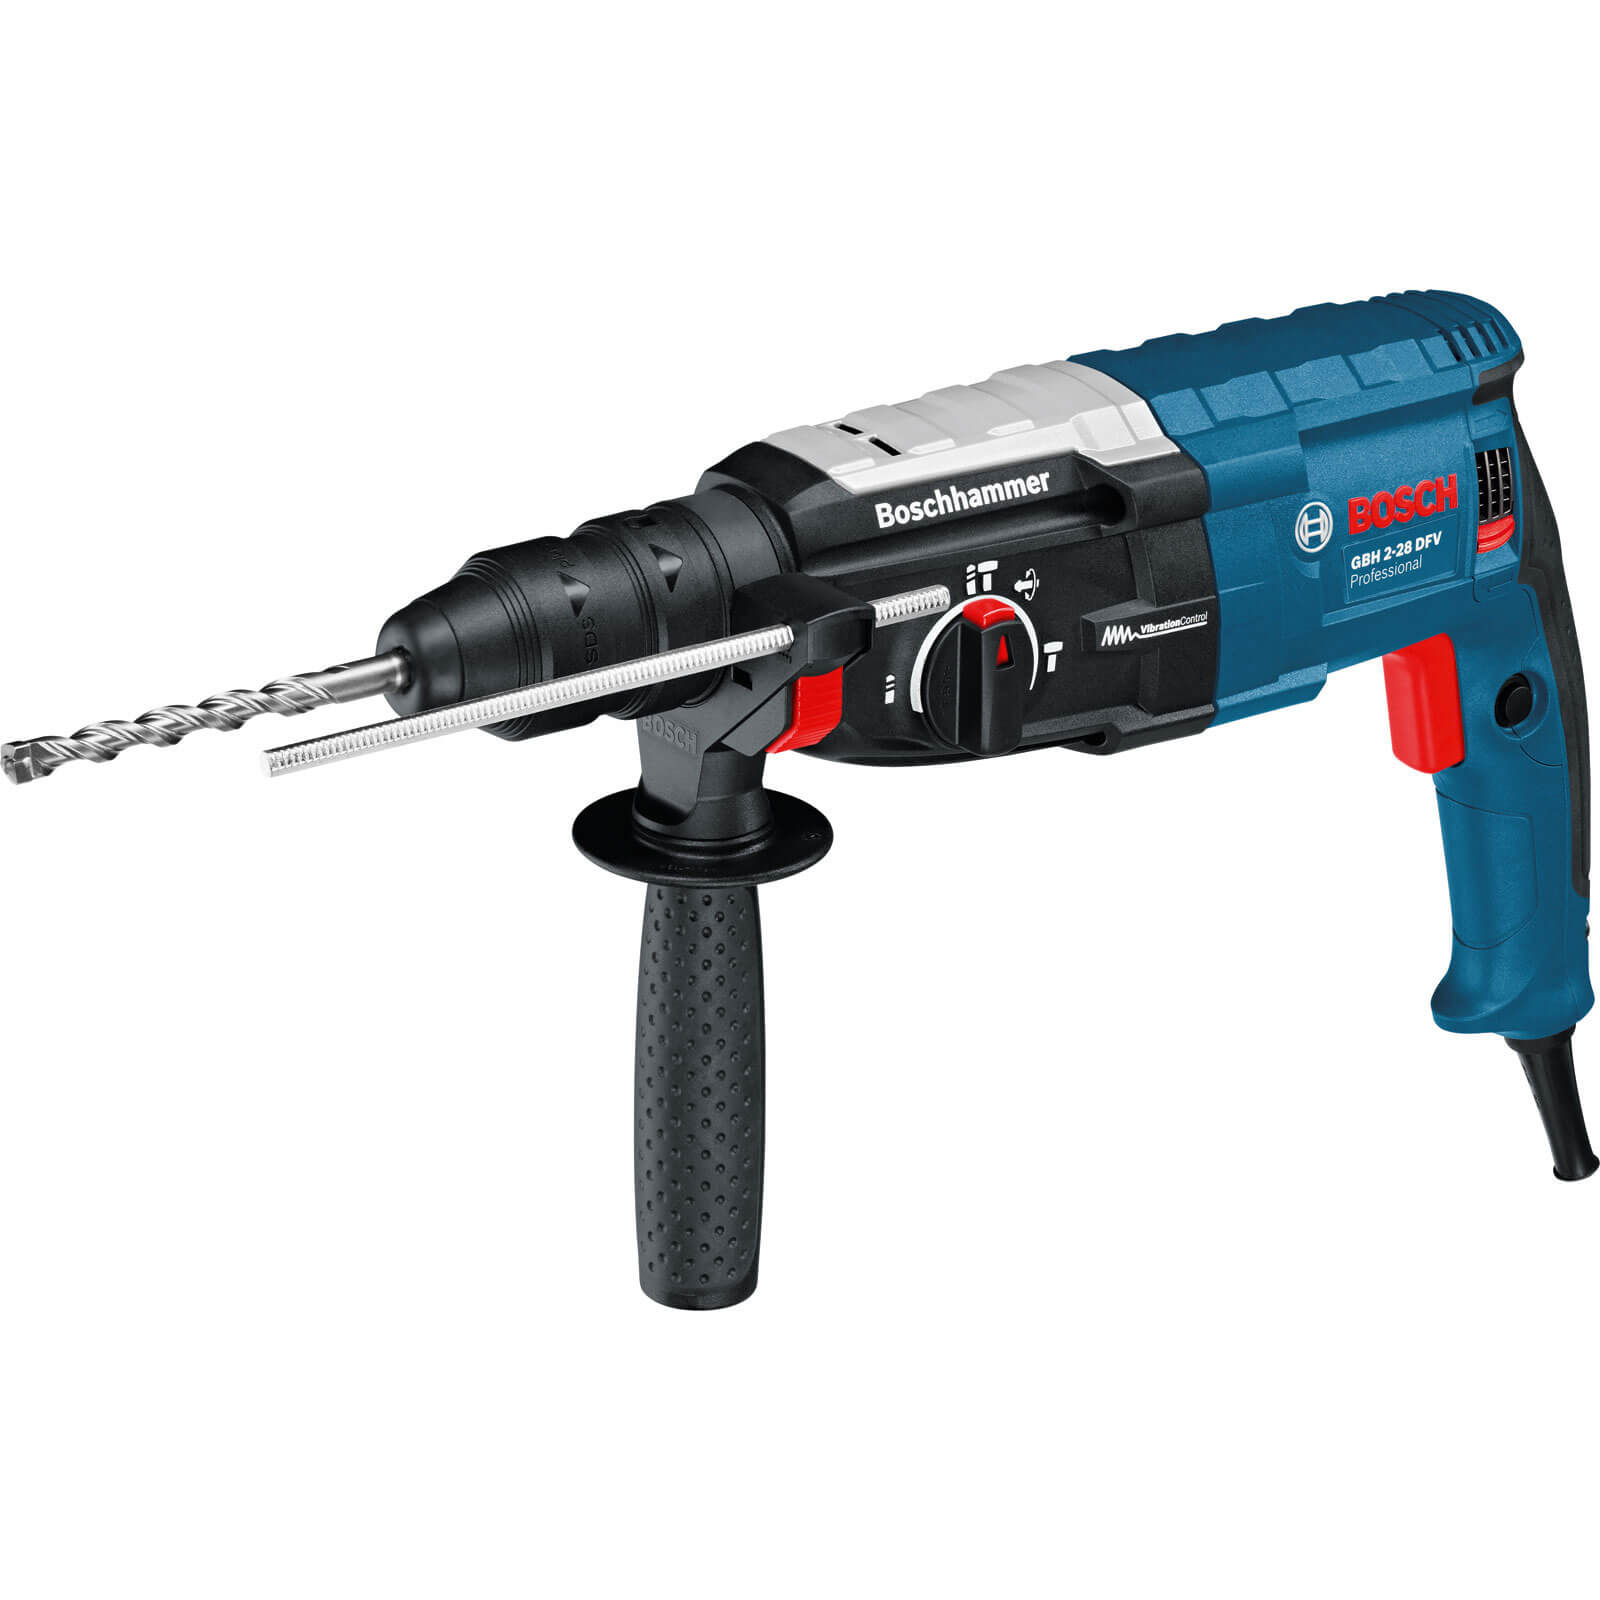 Bosch GBH 2-28 DFV SDS Plus Hammer Drill 850w 240v with Quick Change Chuck + L Boxx